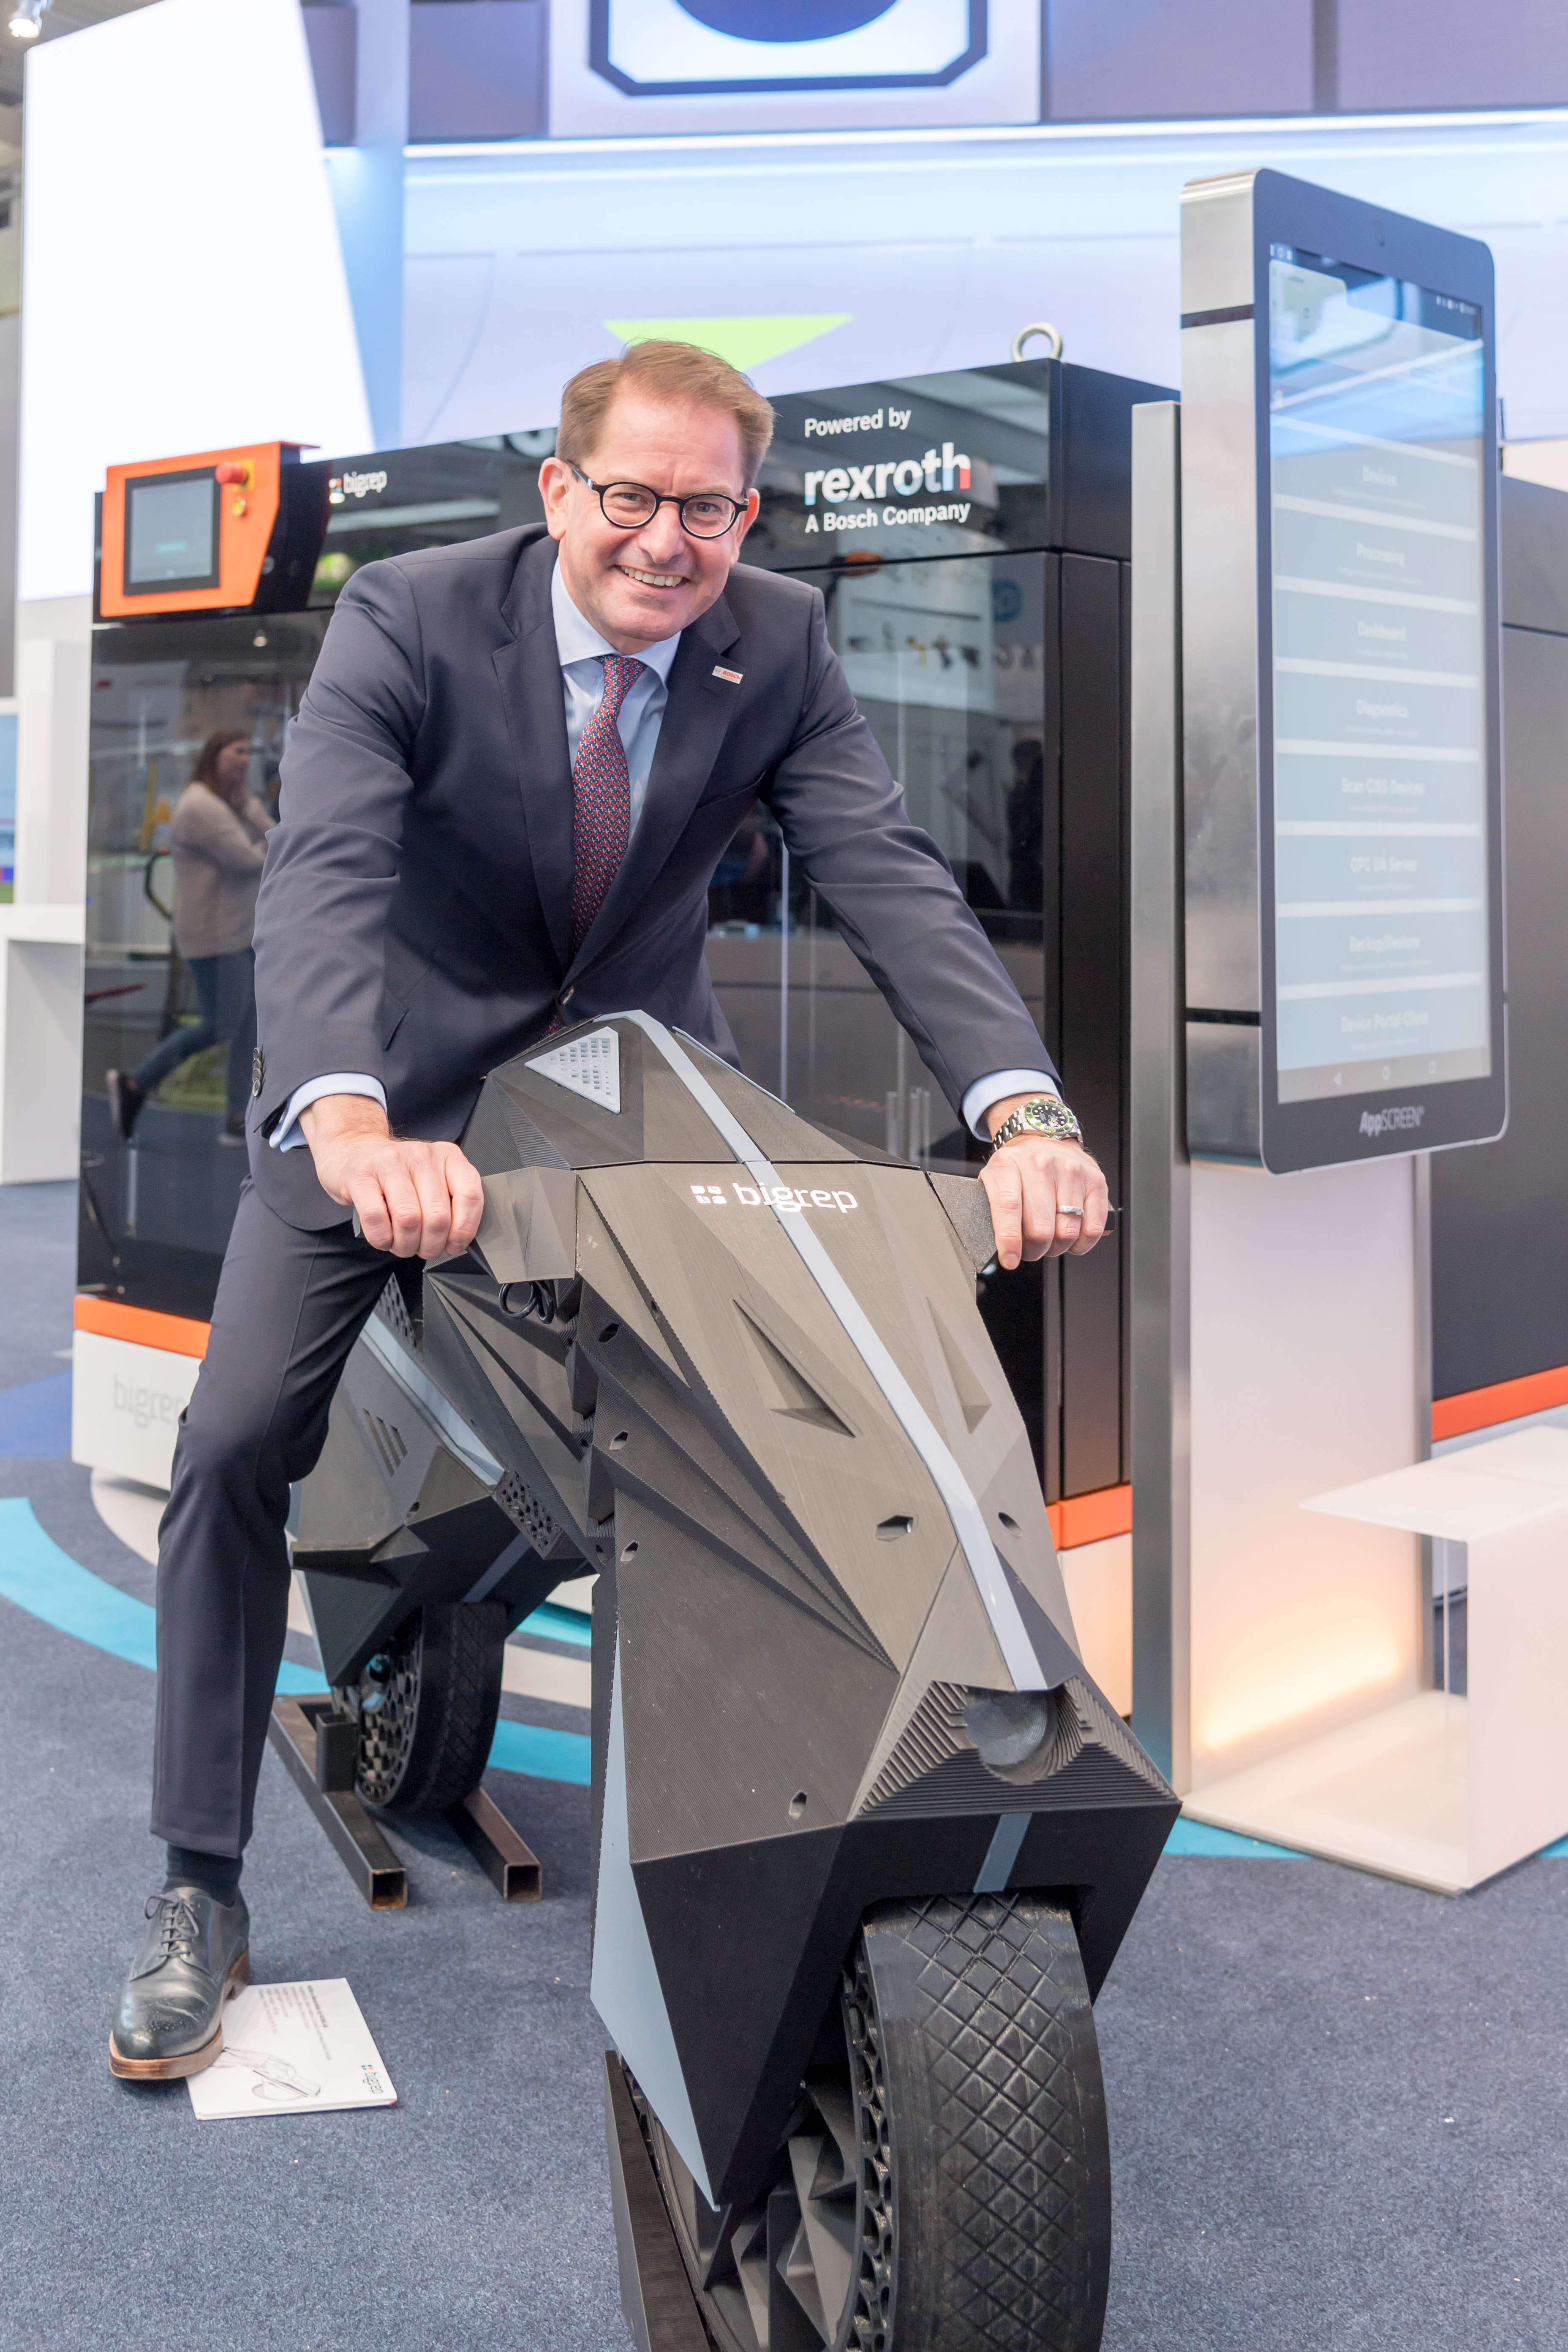 Dr. Marc Wucherer, member of the executive board of Bosch Rexroth, on the world's first 3D-printed electric motorcycle.